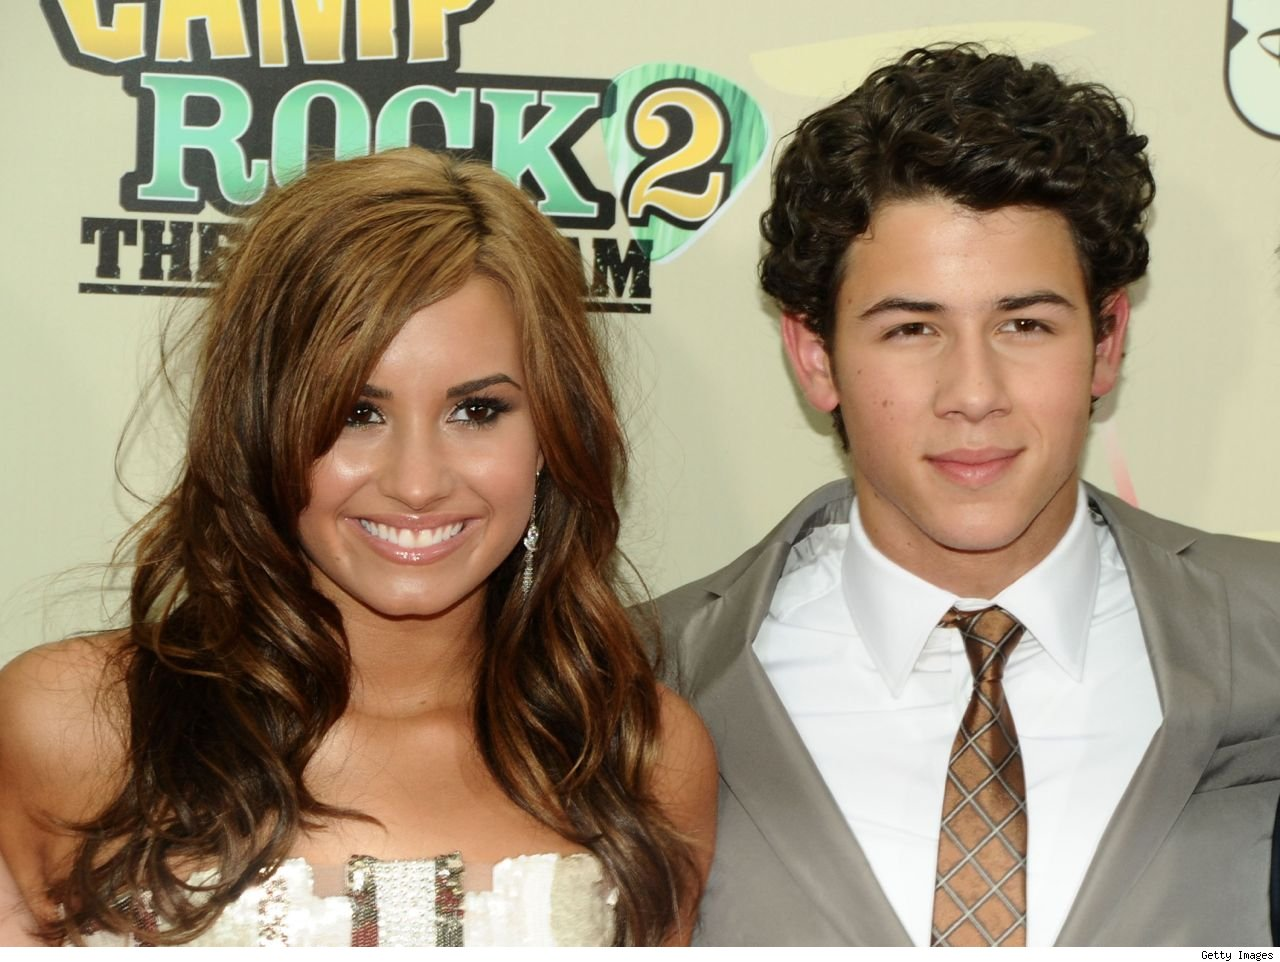 Nick Jonas and Demi Lovato wrote songs for Demi album